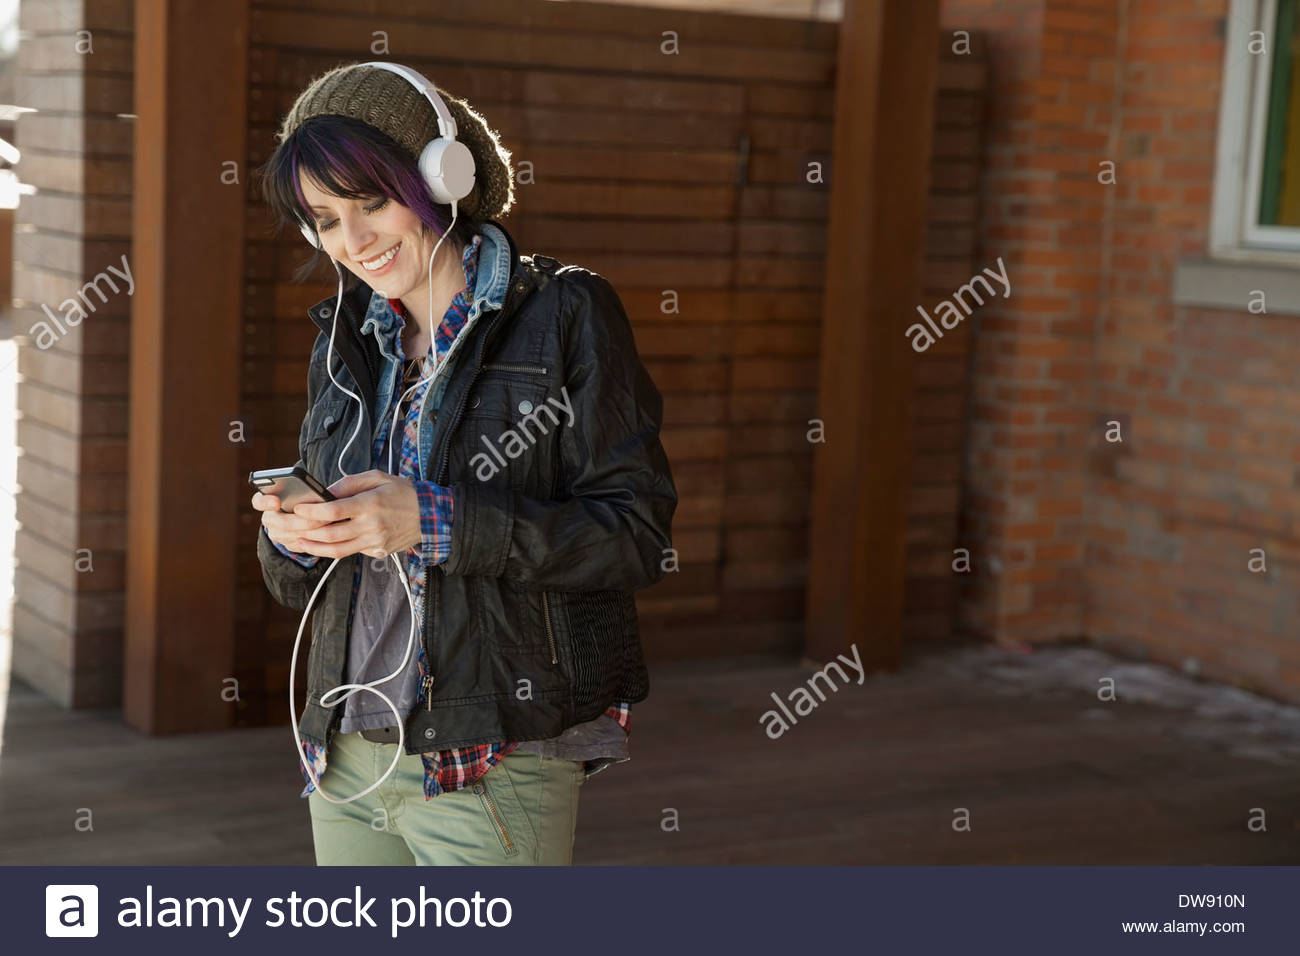 Smiling woman listening to music on headphones outdoors Photo Stock